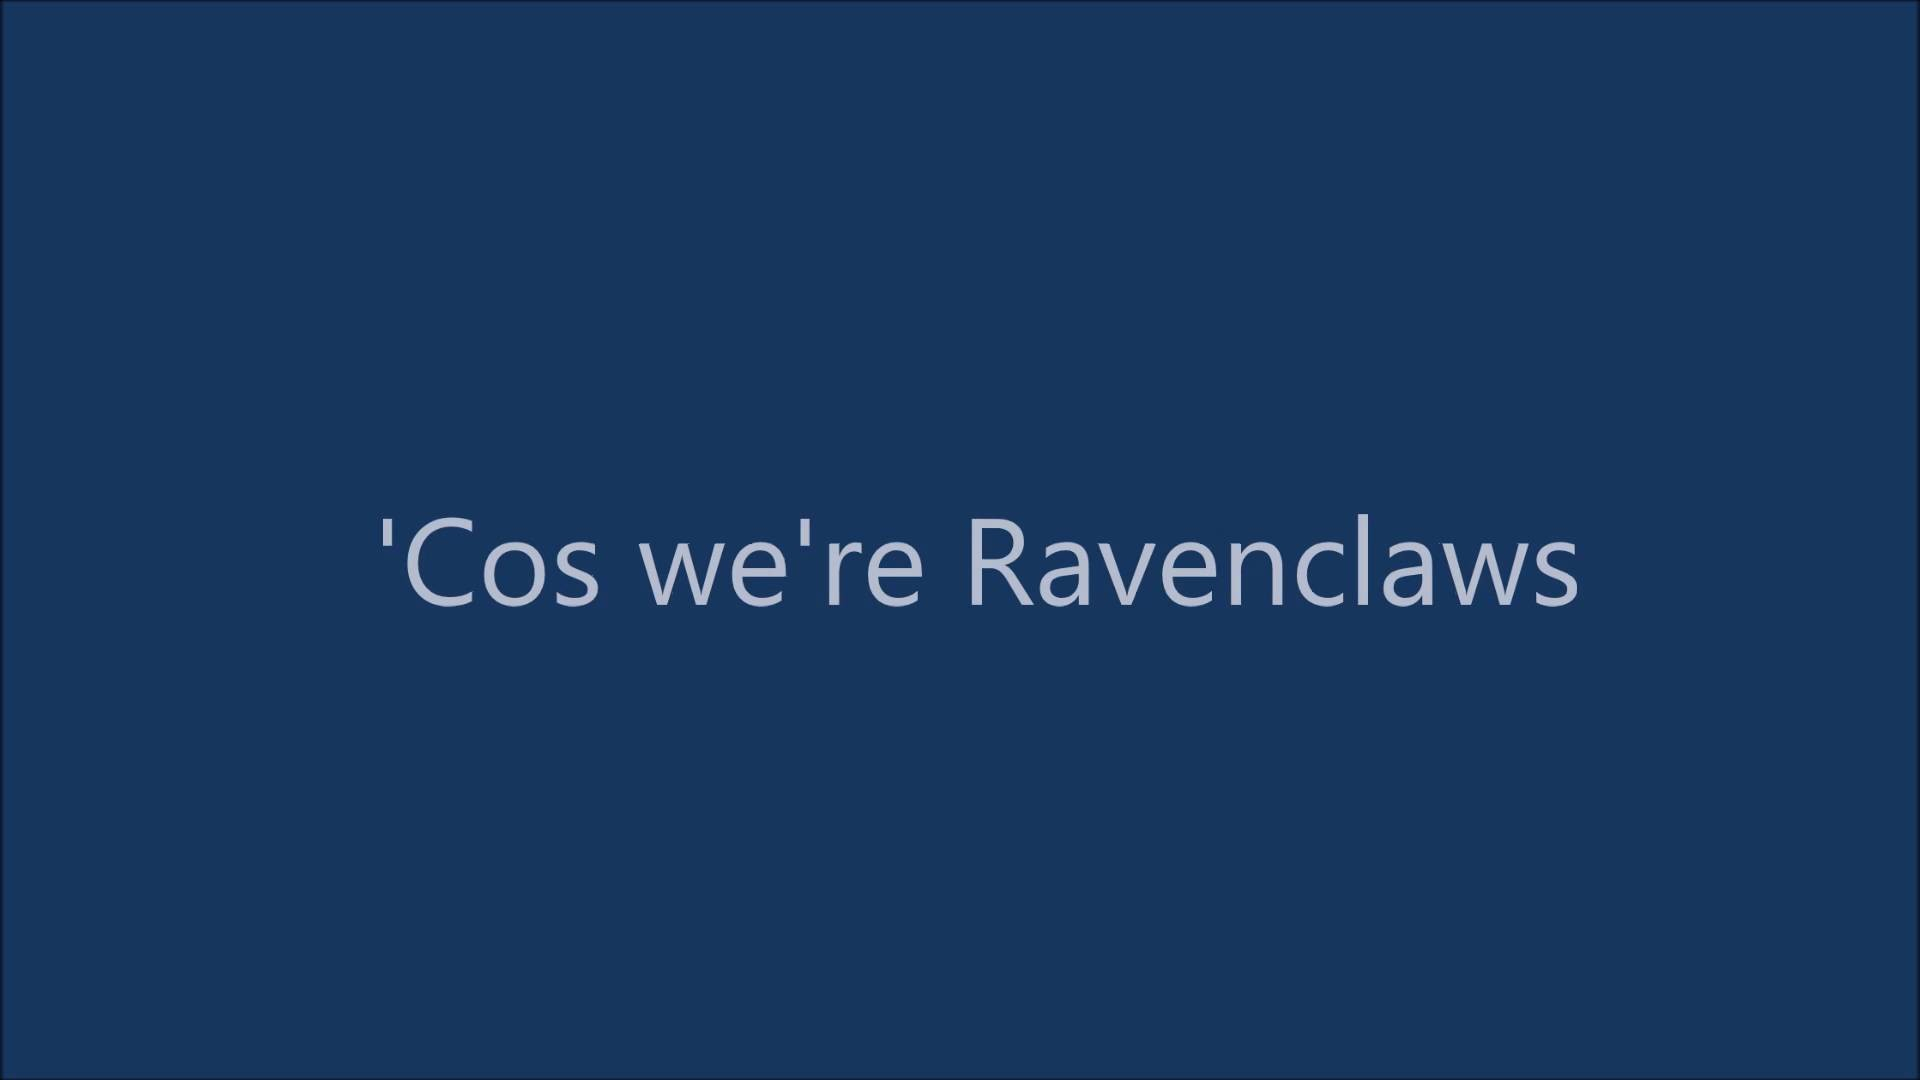 Res: 1920x1080, ... ravenclaw wallpaper for Computers, Mobile phones and Laptops. you can  download thousands of high quality wallpapers for free. All pictures are  sorted by ...